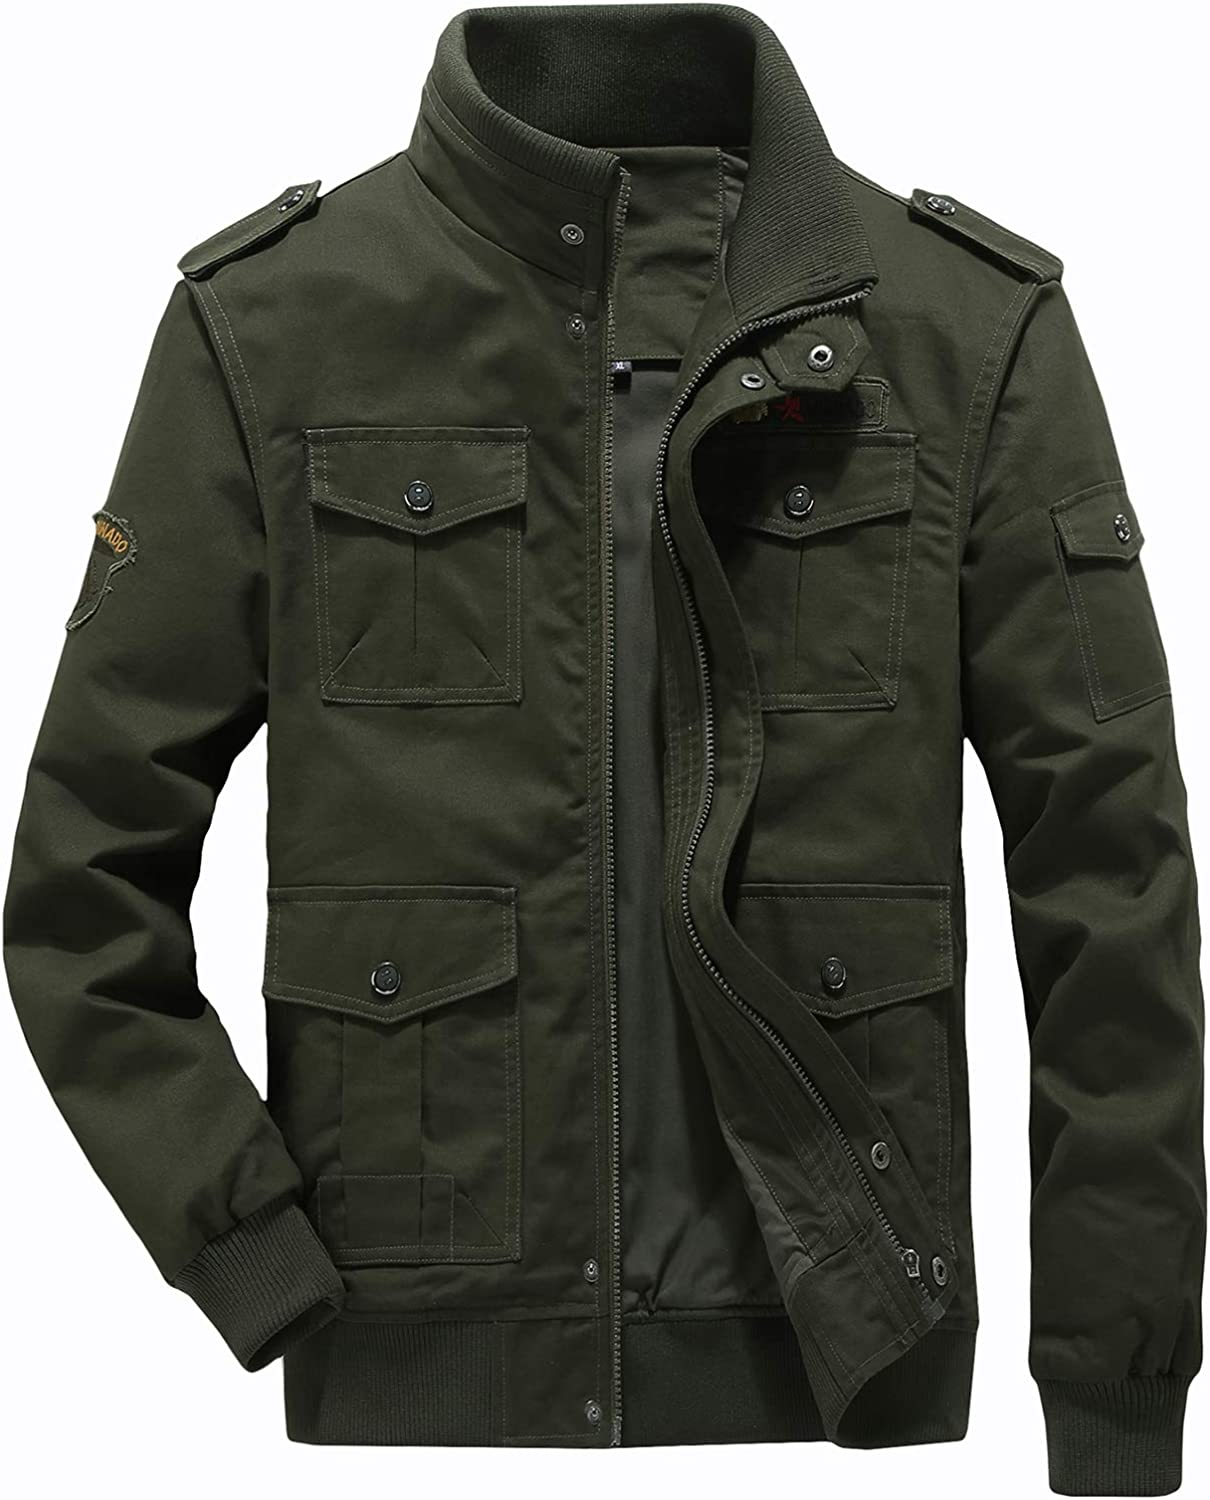 60s 70s Men's Jackets & Sweaters LABEYZON Mens Outdoor Casual Cotton Bomber Jacket Tactical Cargo Windbreaker Military Jacket Men $39.98 AT vintagedancer.com